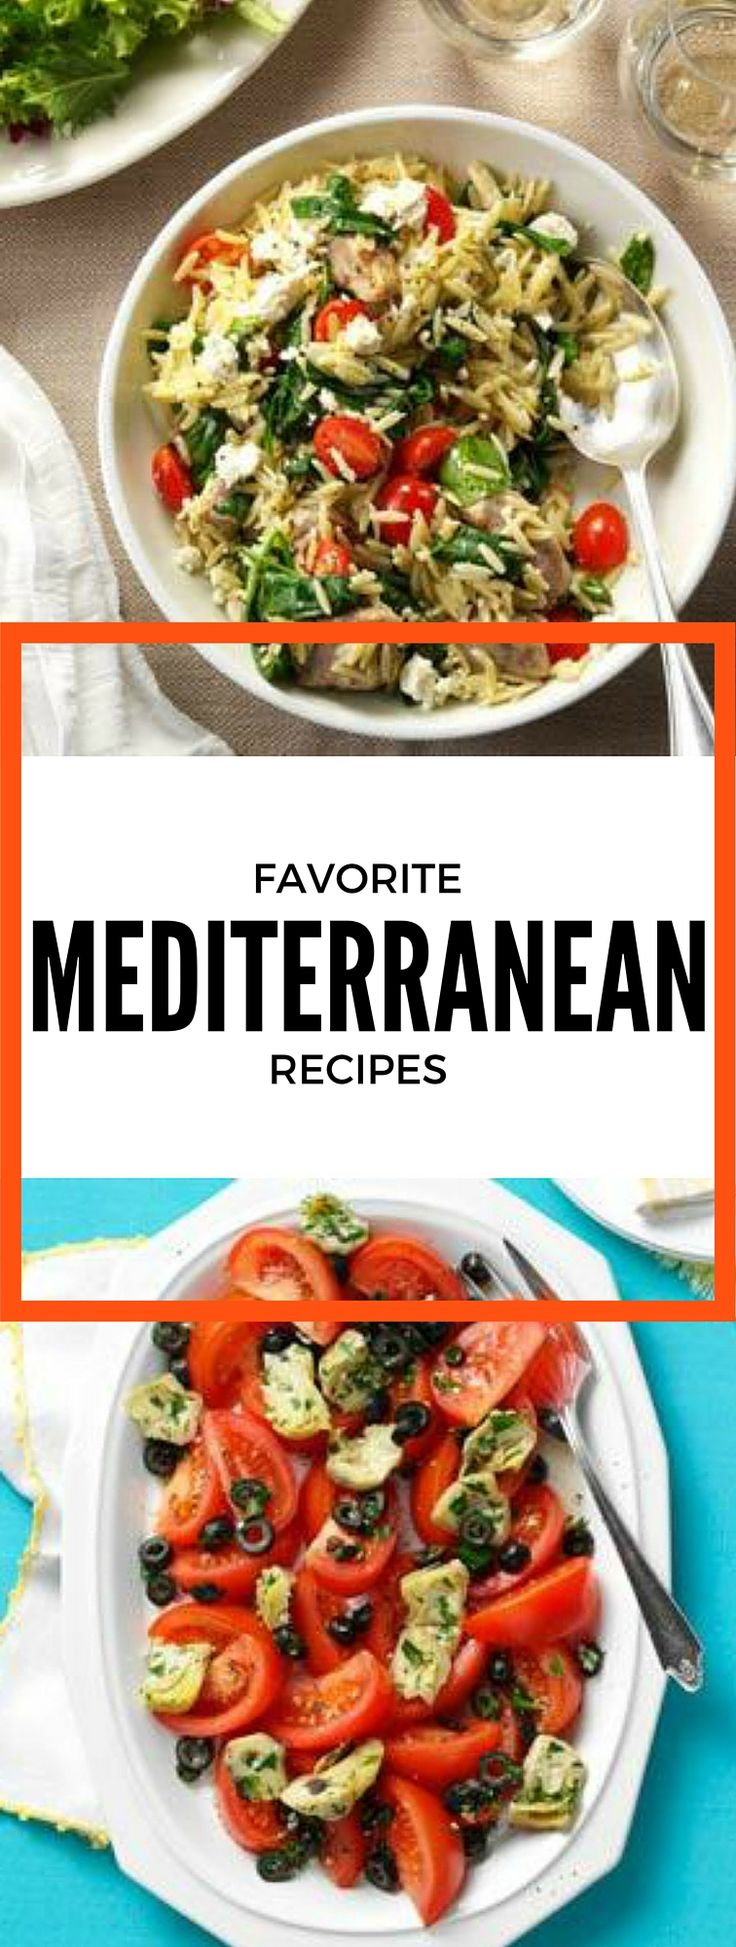 Enjoy a vacation meal without ever leaving your house with these Favorite Mediterranean Recipes from Taste of Home including: Tuscan Chicken, Summer Garden Couscous Salad, Grilled Greek Fish and more!